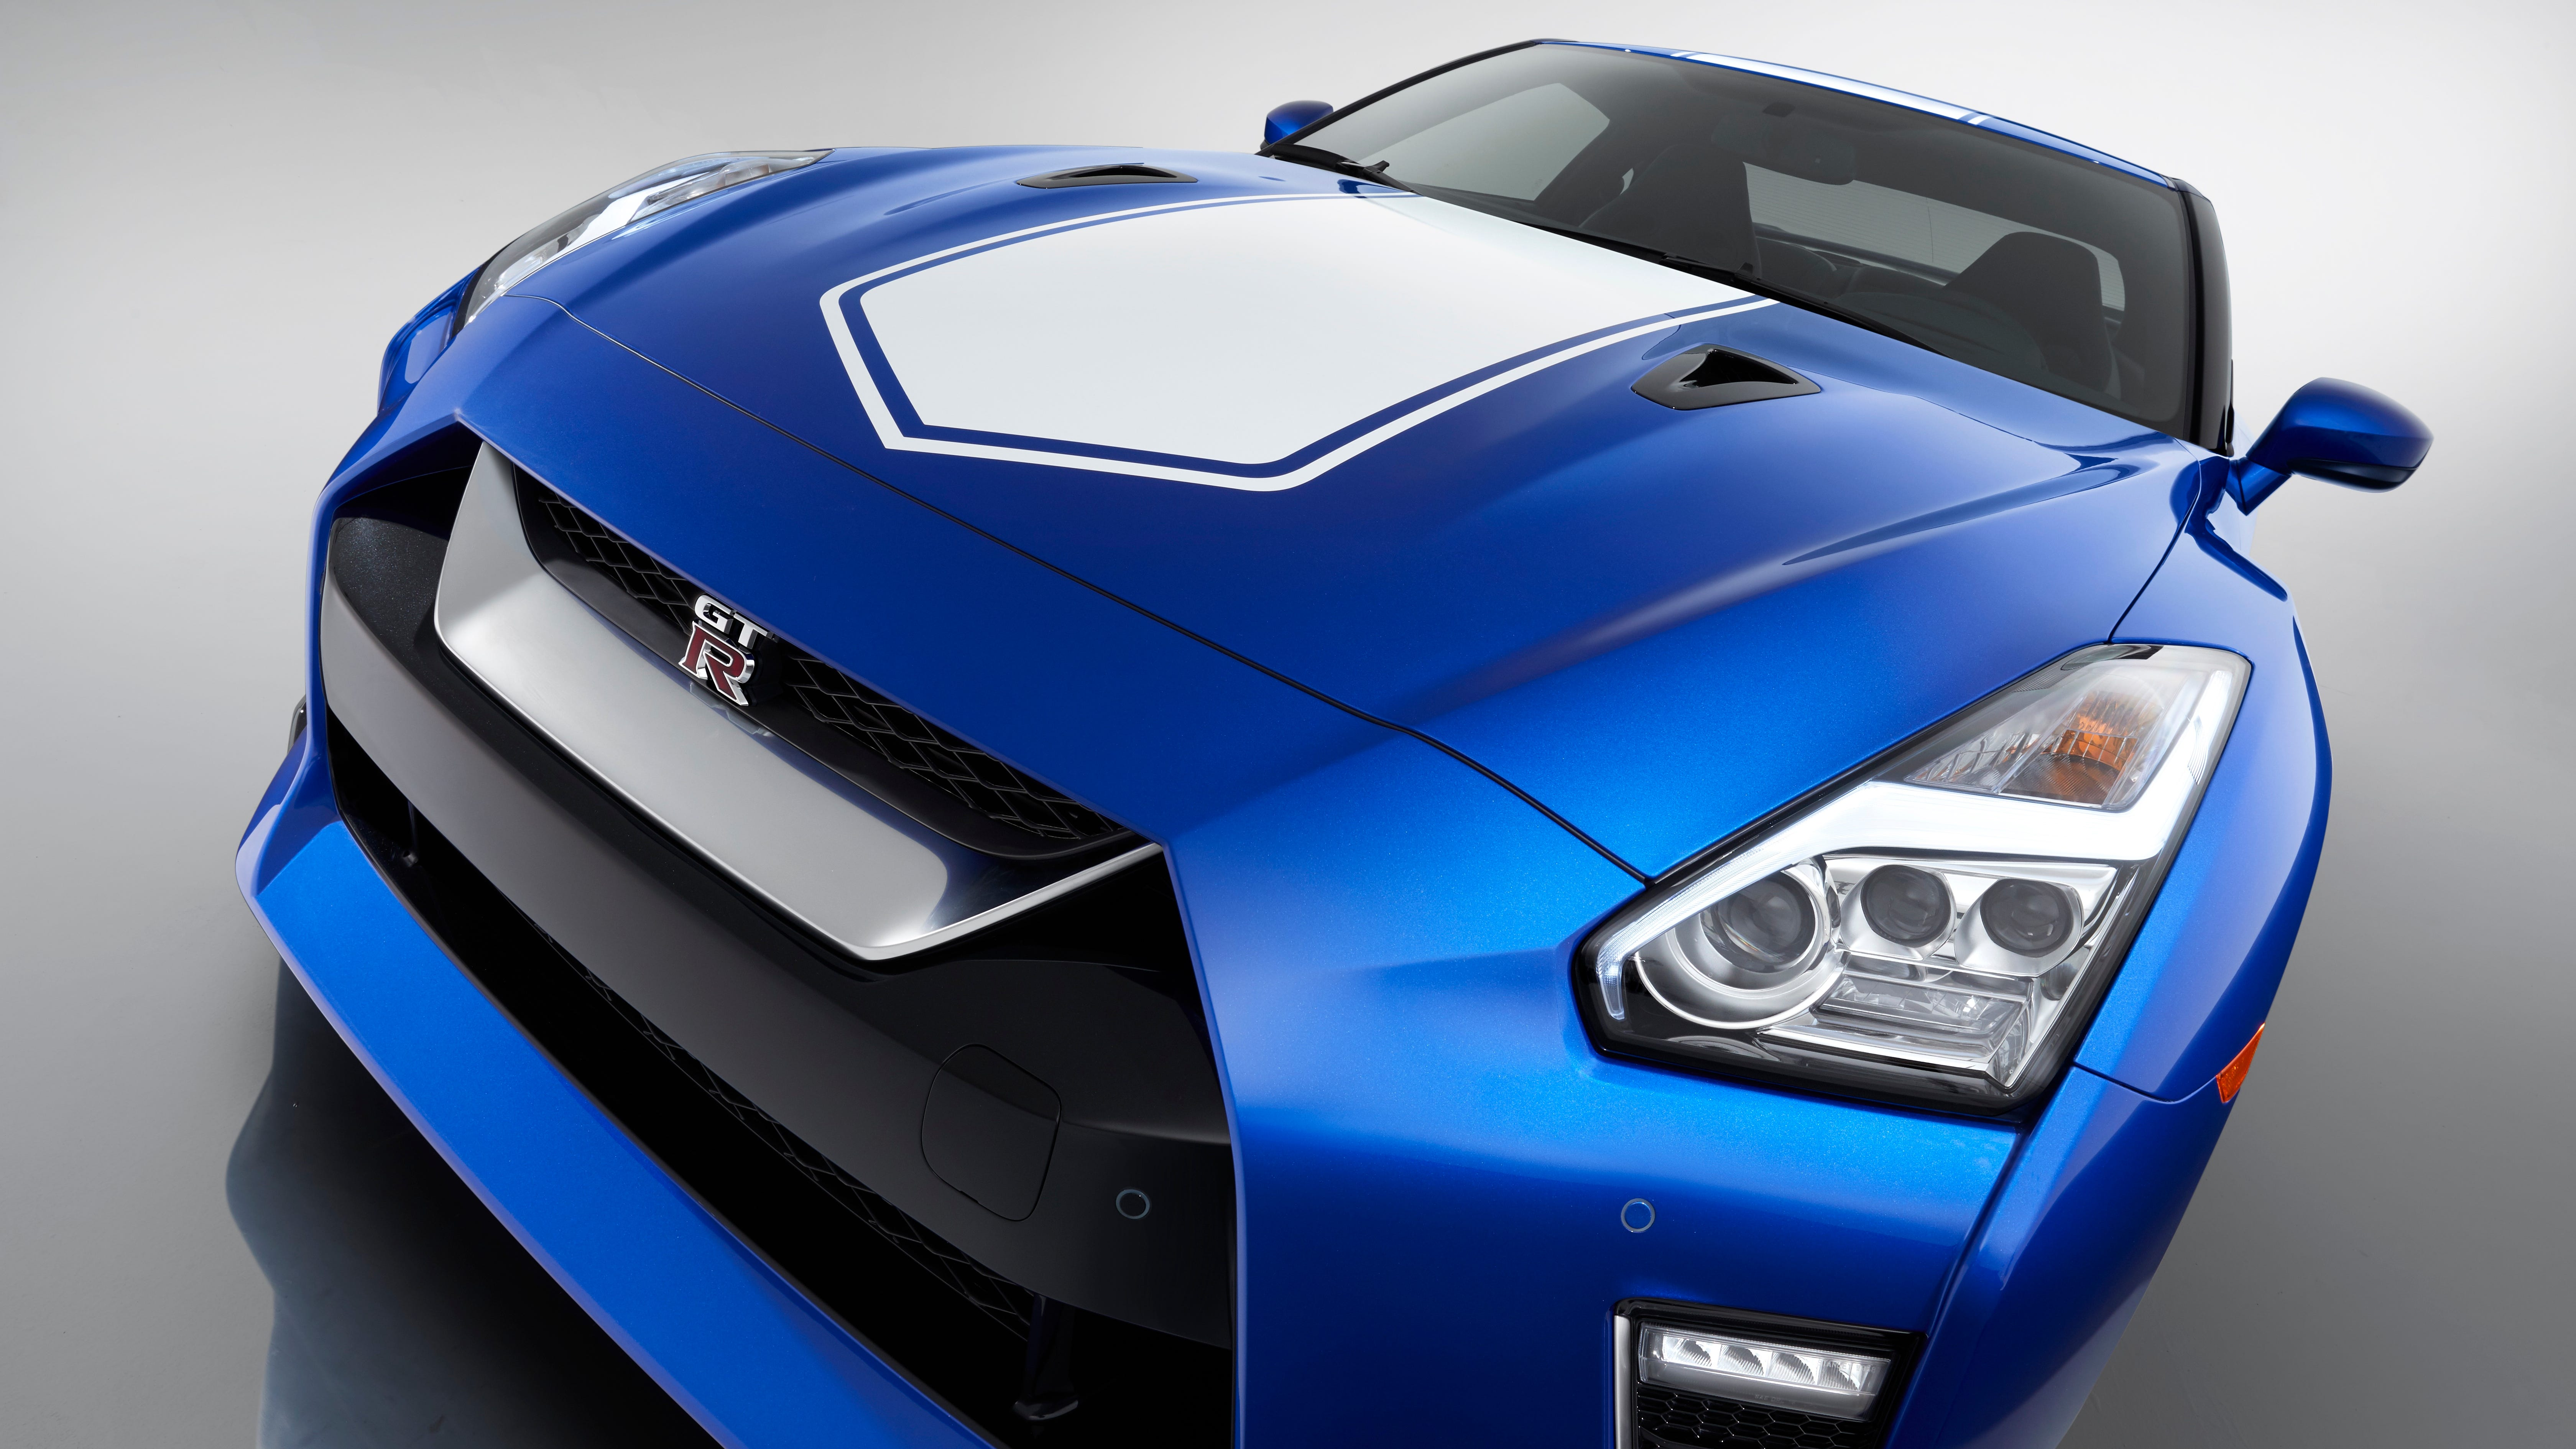 The Nissan GT-R is turning 50, but it's not showing its age – at least if its handmade engine has anything to say about it.